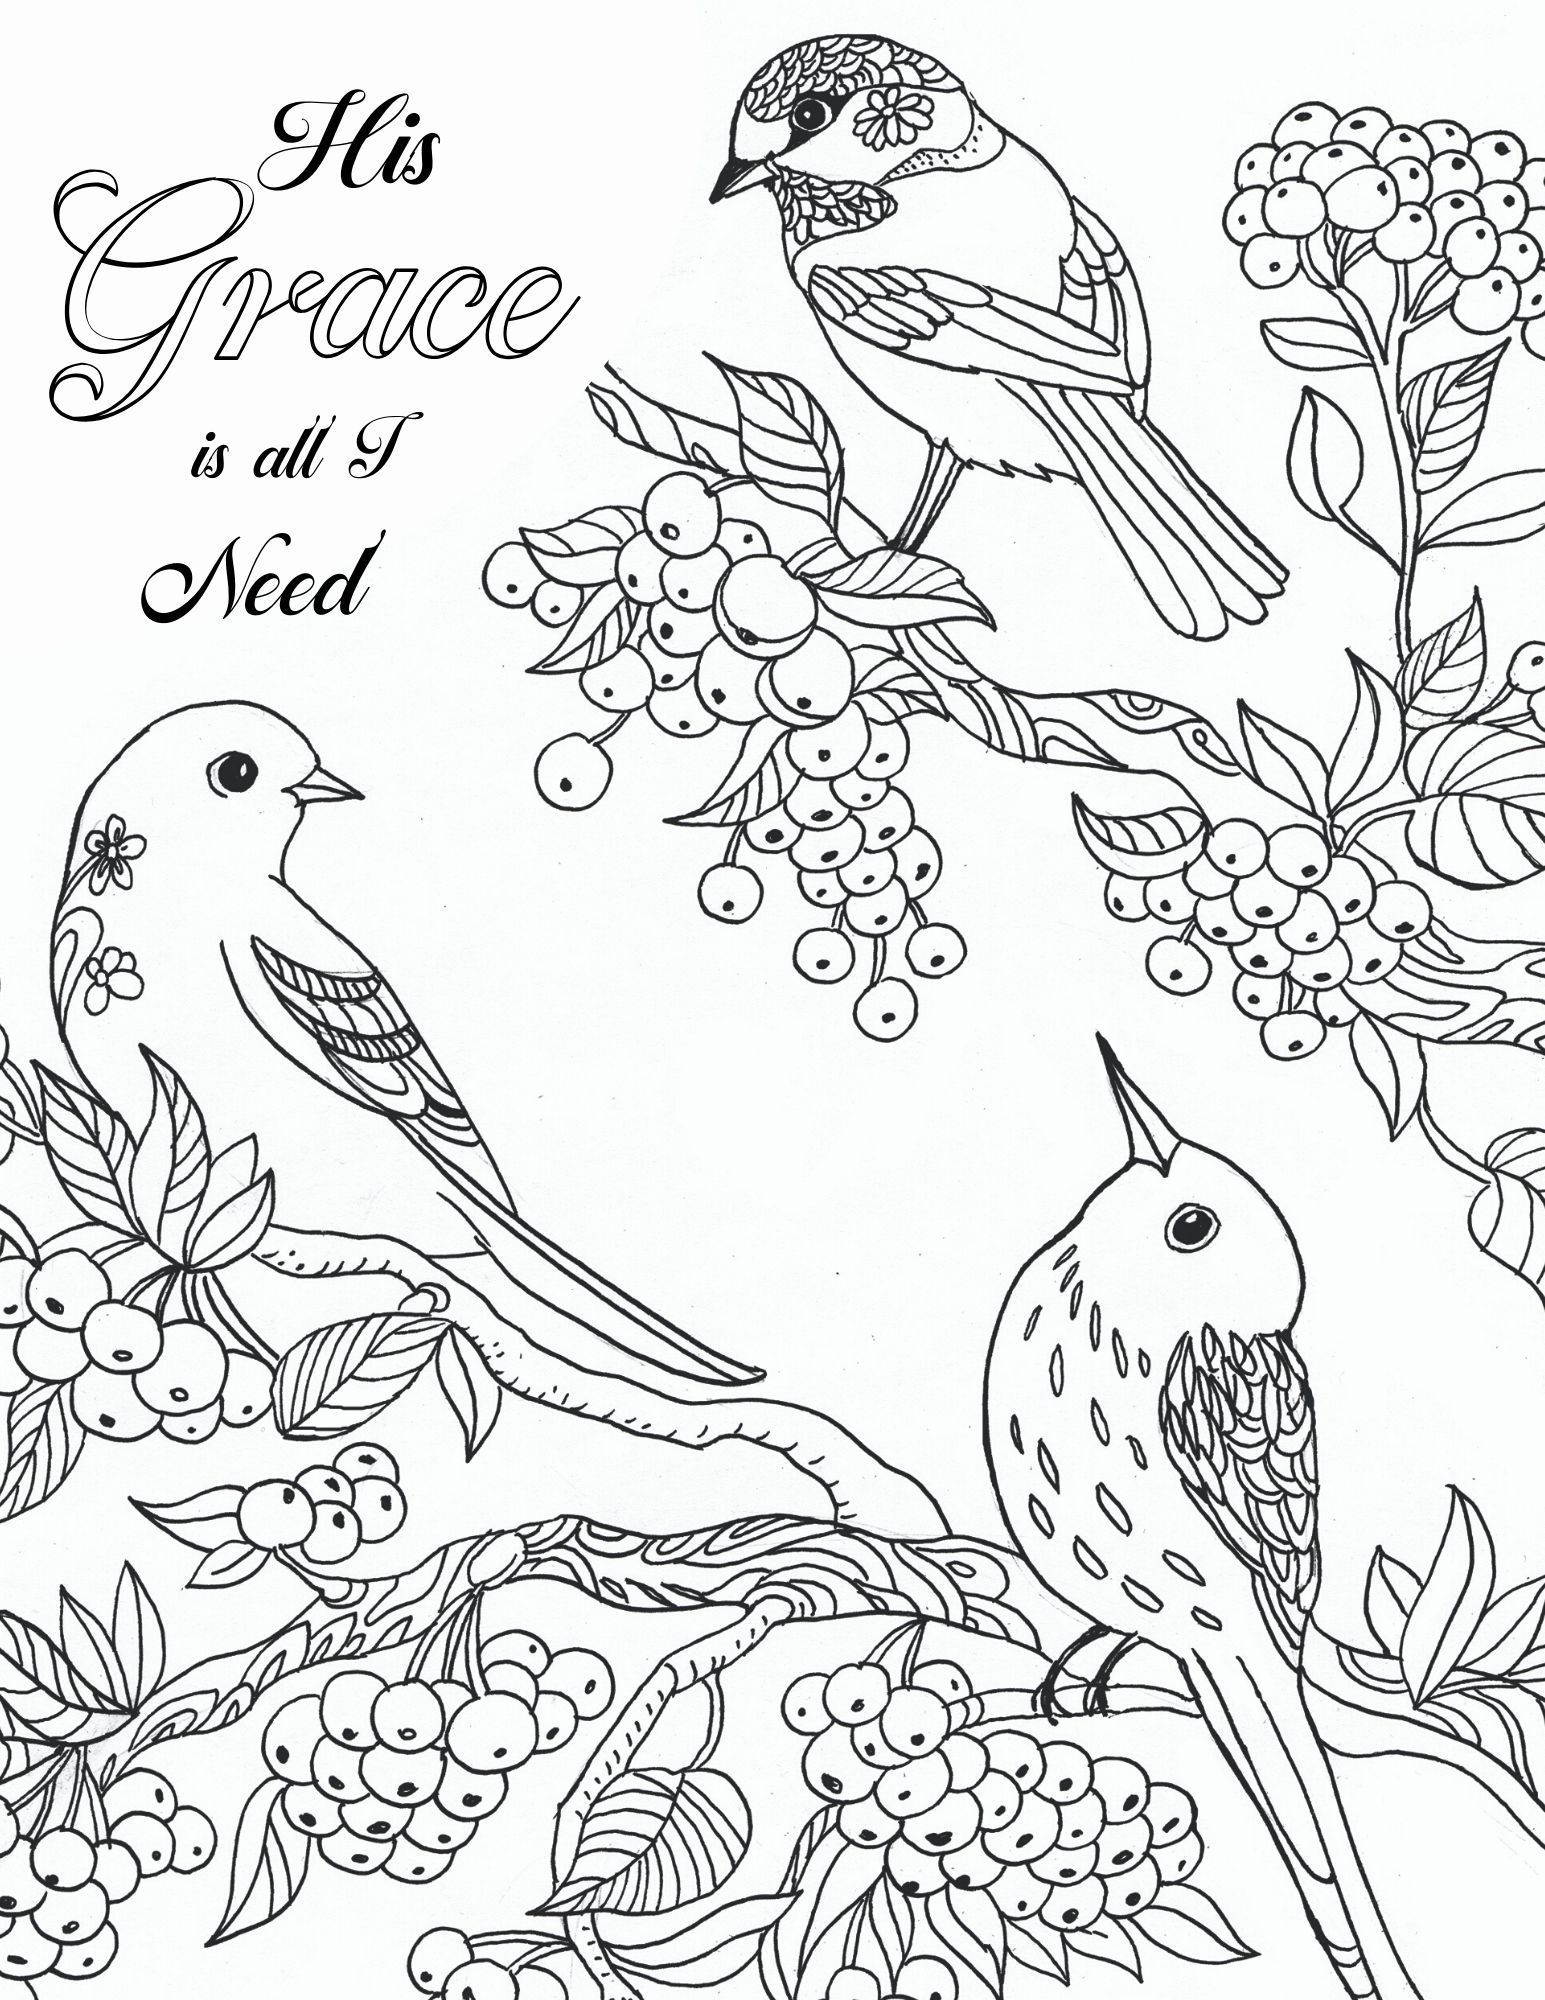 Printables Library Coloring Pages Bible Verse Coloring Page Bible Coloring Pages Bible Verse Coloring